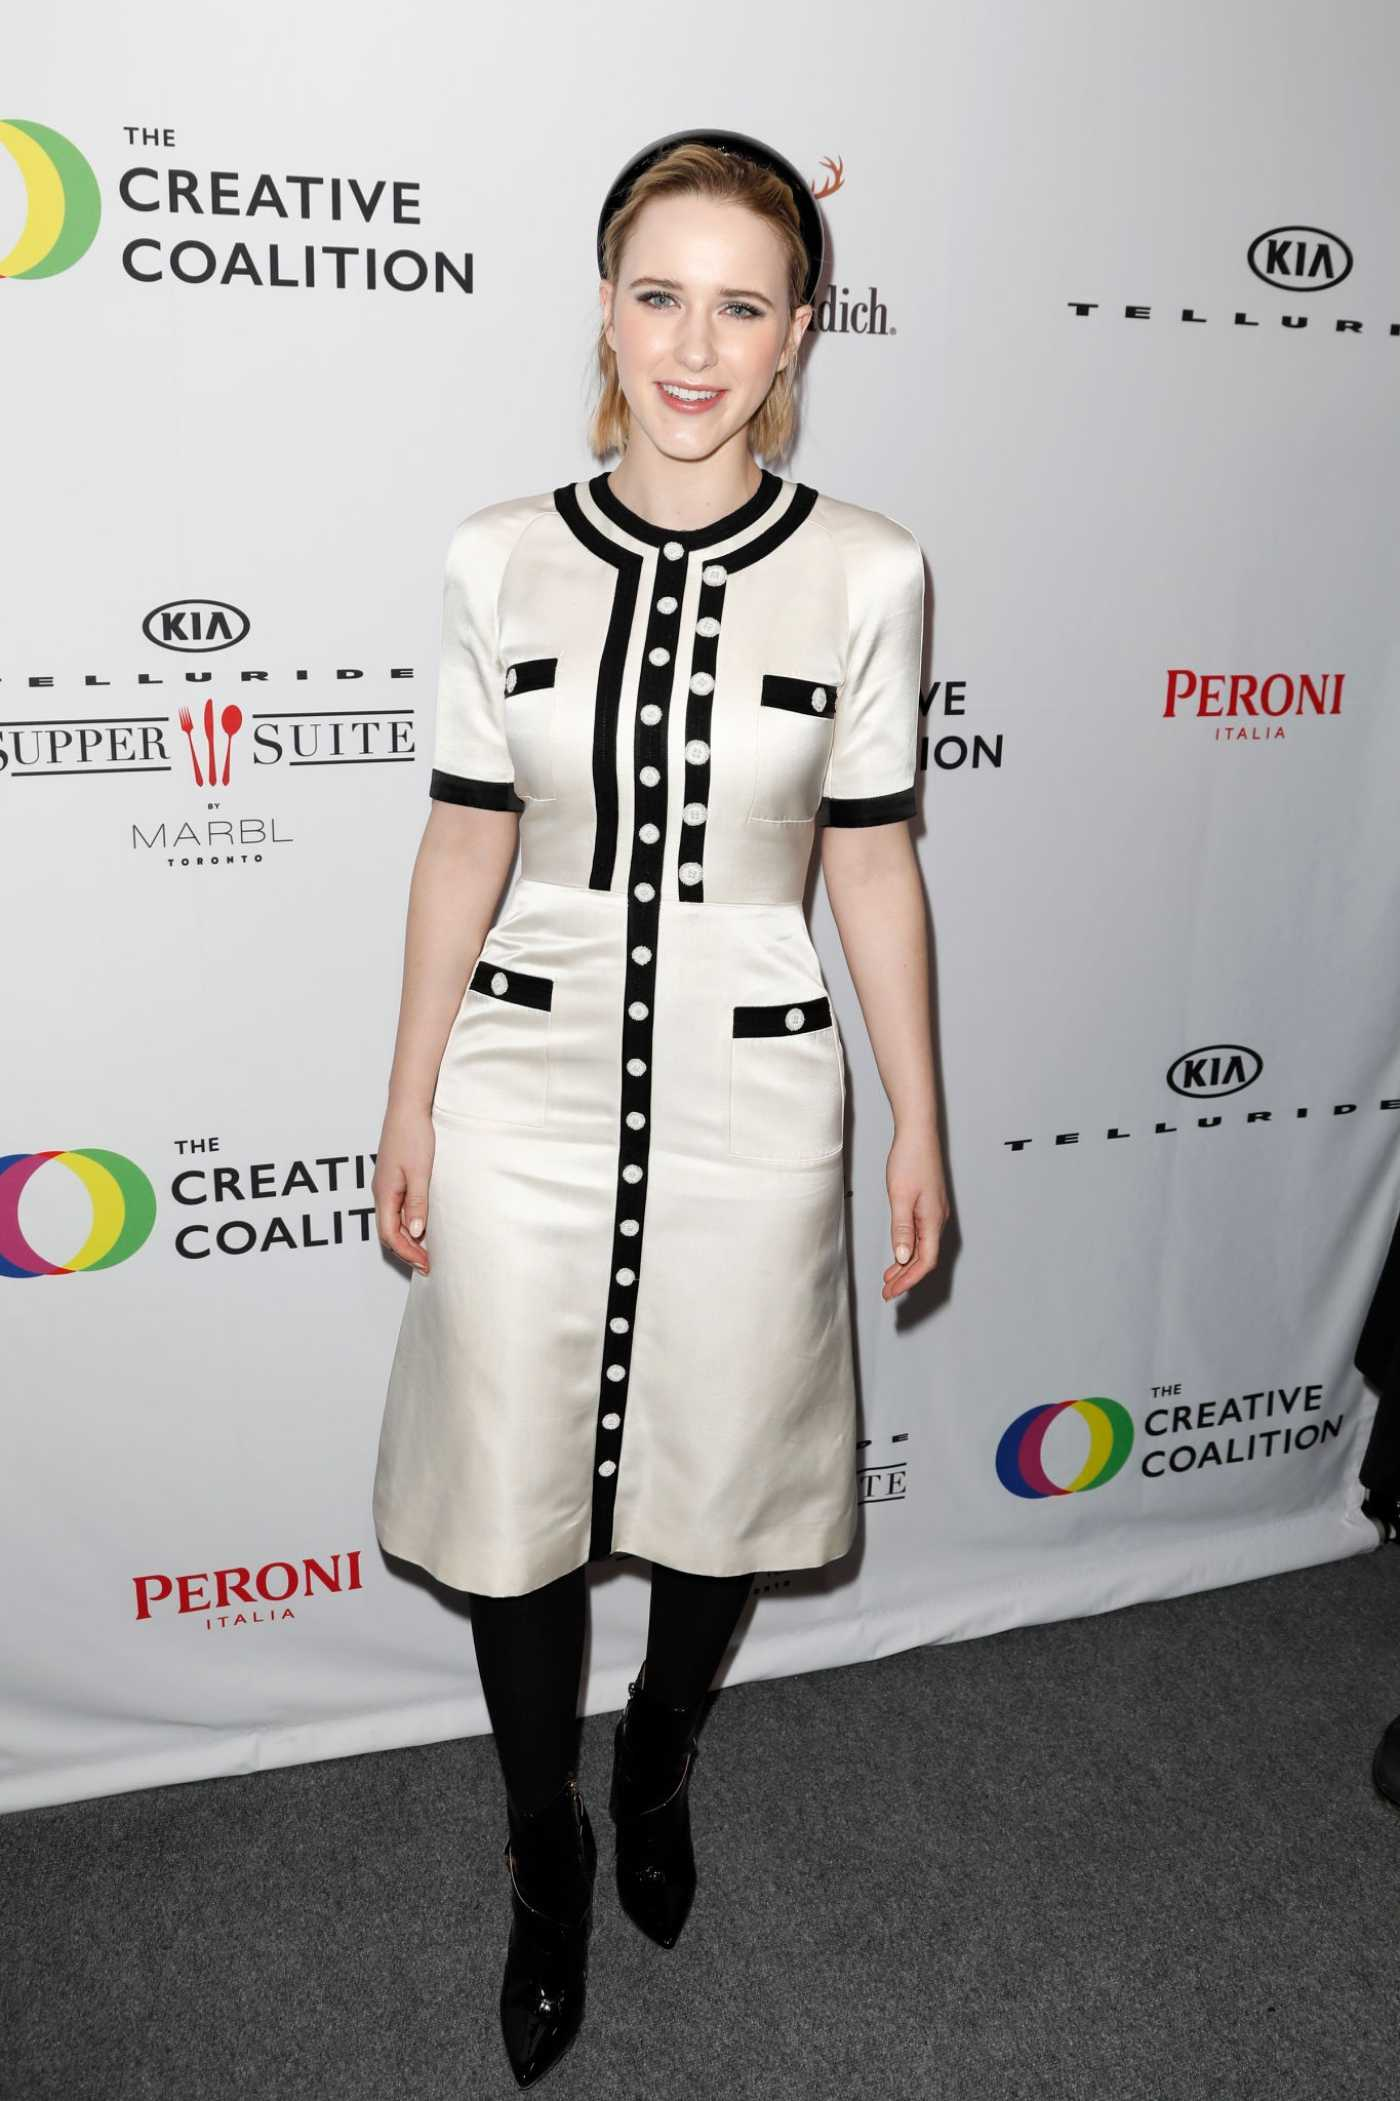 Rachel Brosnahan Attends The Creative Coalition's Spotlight Initiative Gala Awards in Park City 01/25/2020